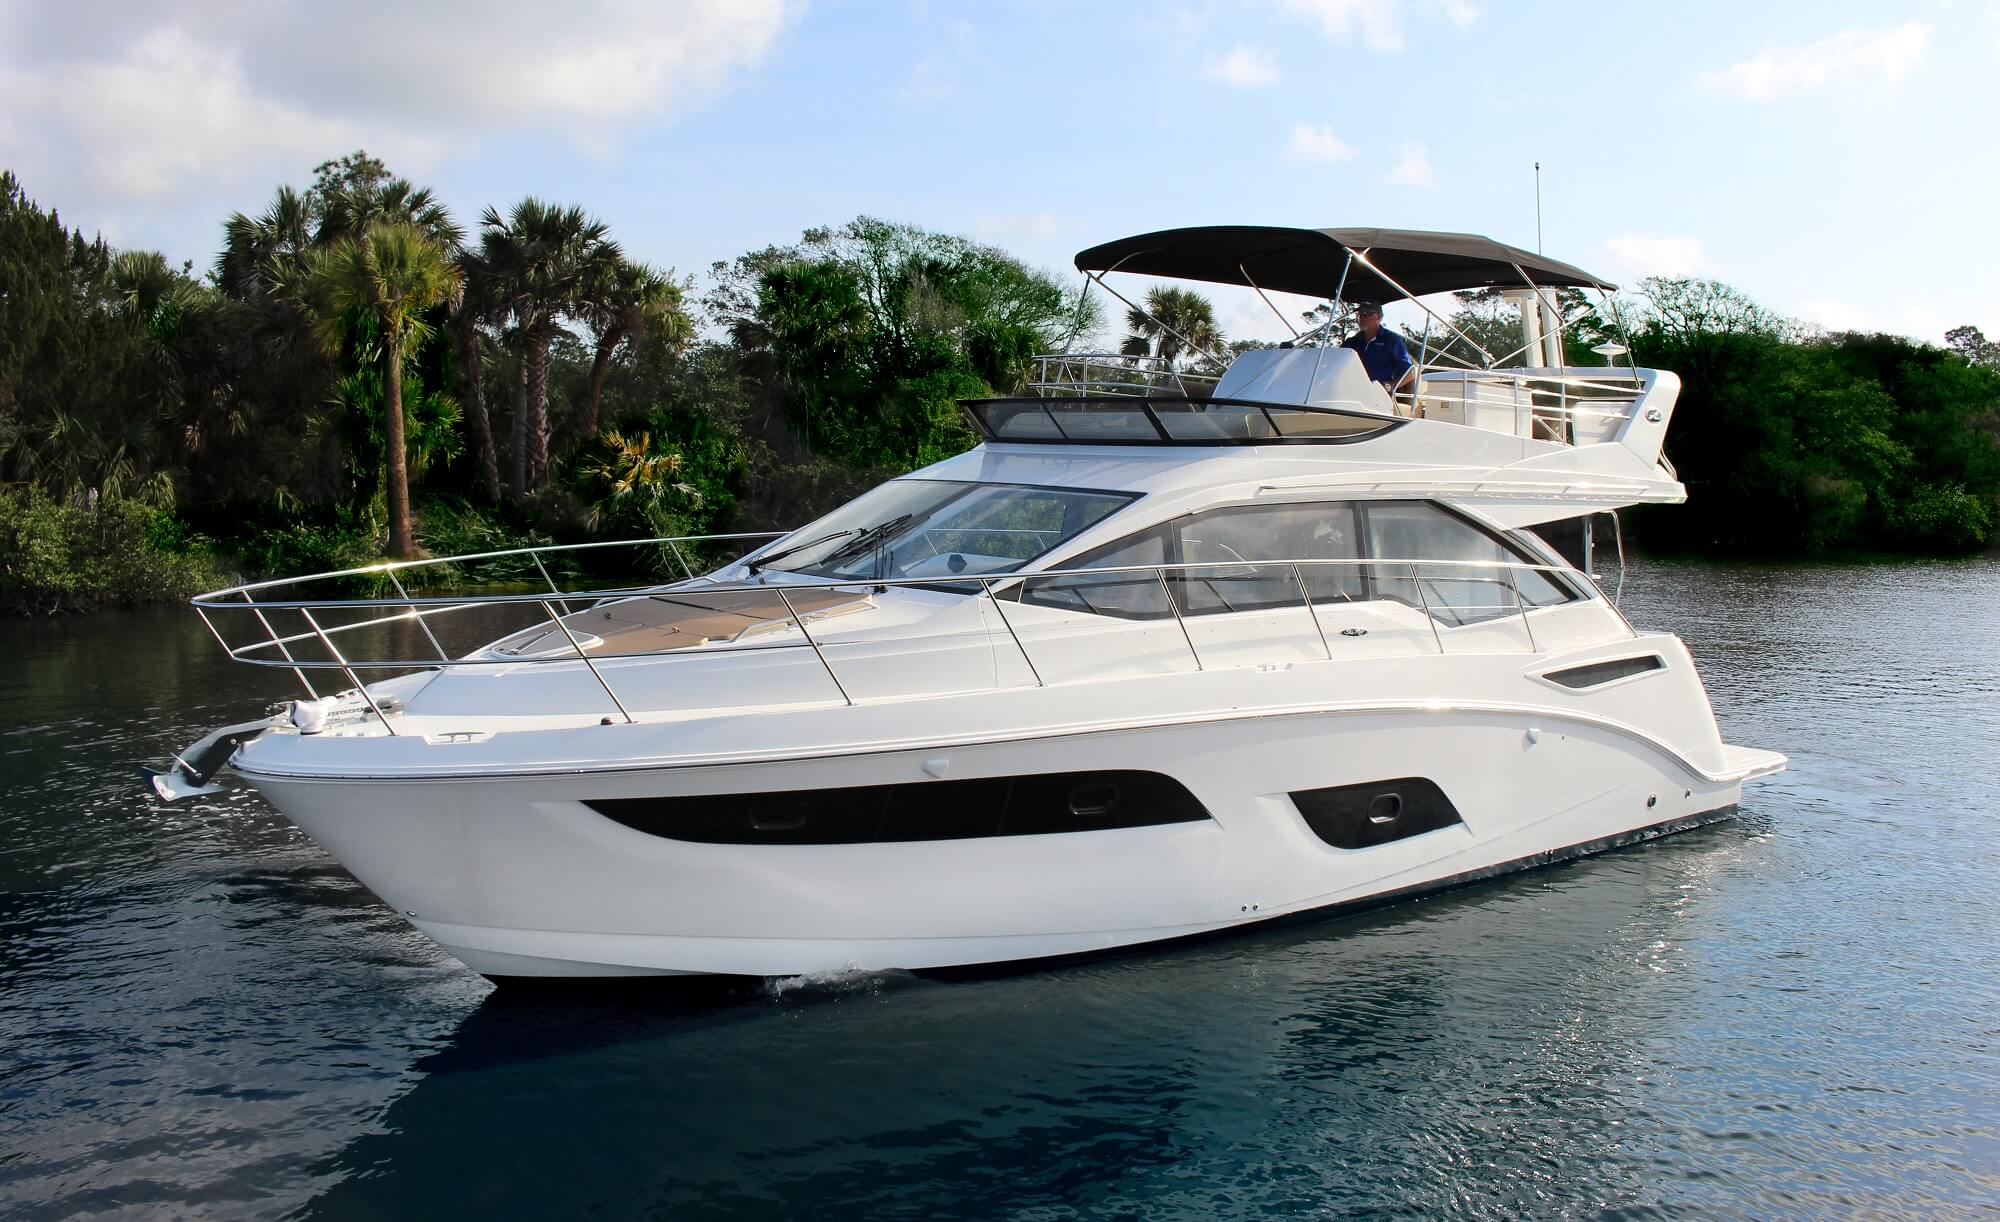 Sea Ray Boats Sydney - Chapman Marine Group